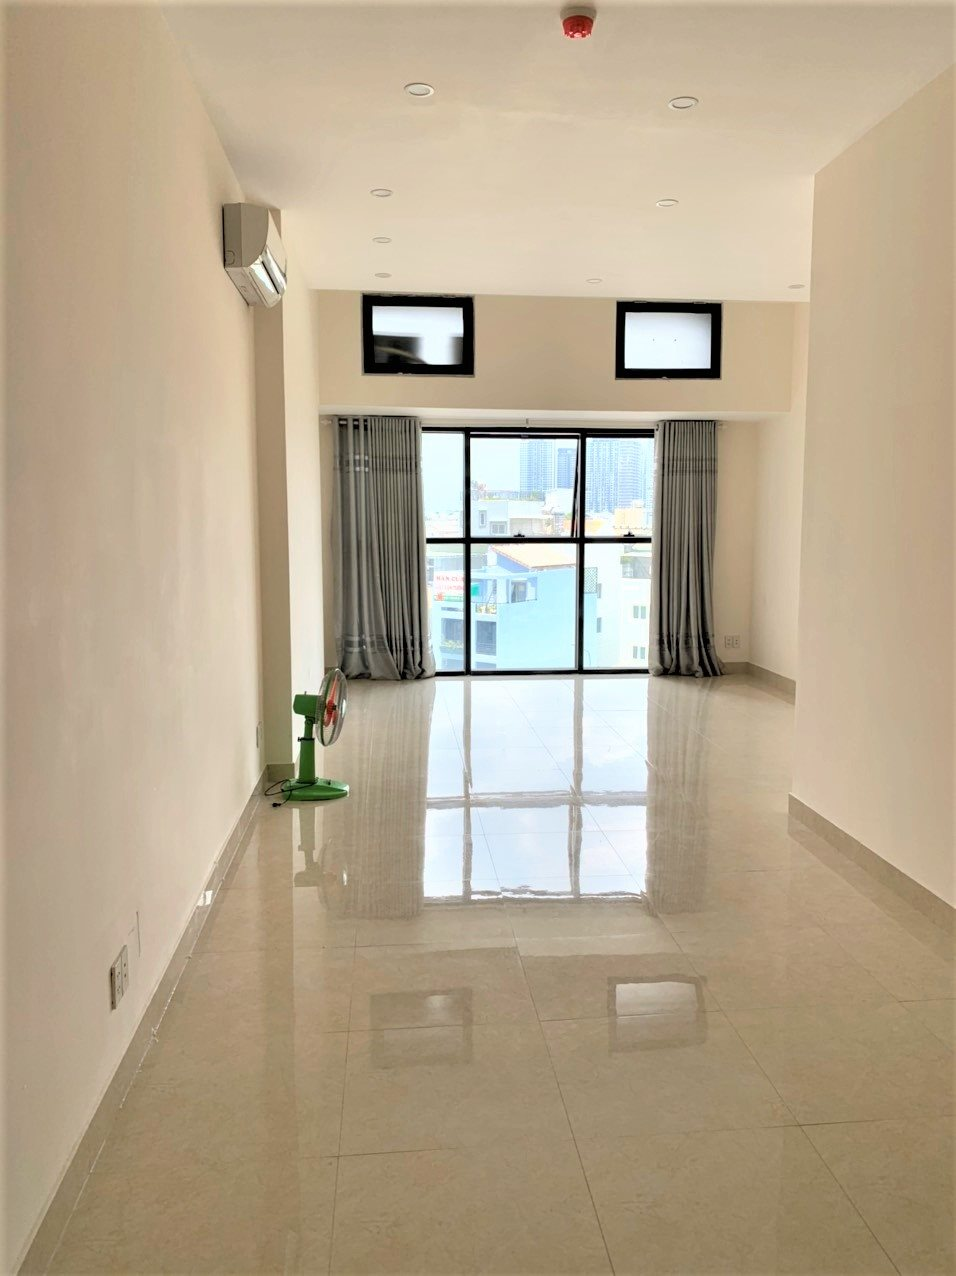 D227248 - APARTMENT FOR RENT - THE SUN AVENUE - 1 bedroom